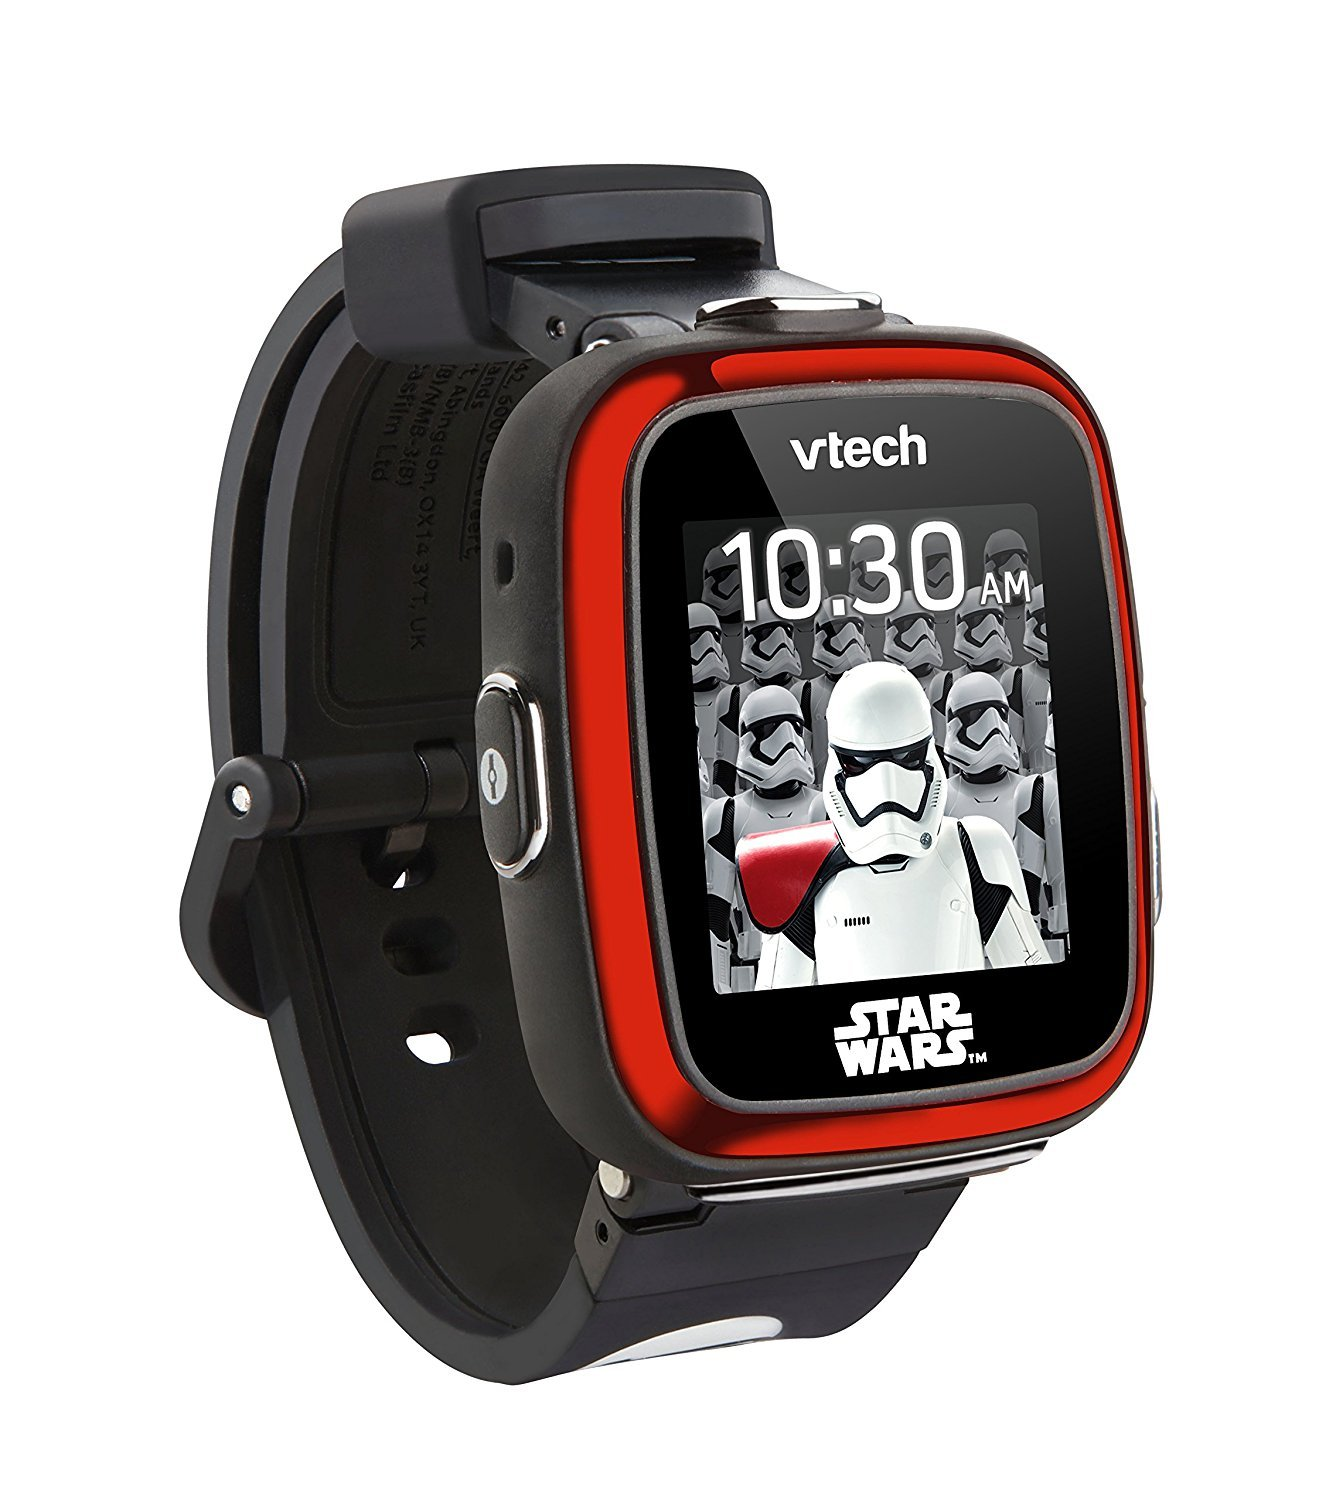 VTech Star Wars First Order Stormtrooper Smartwatch